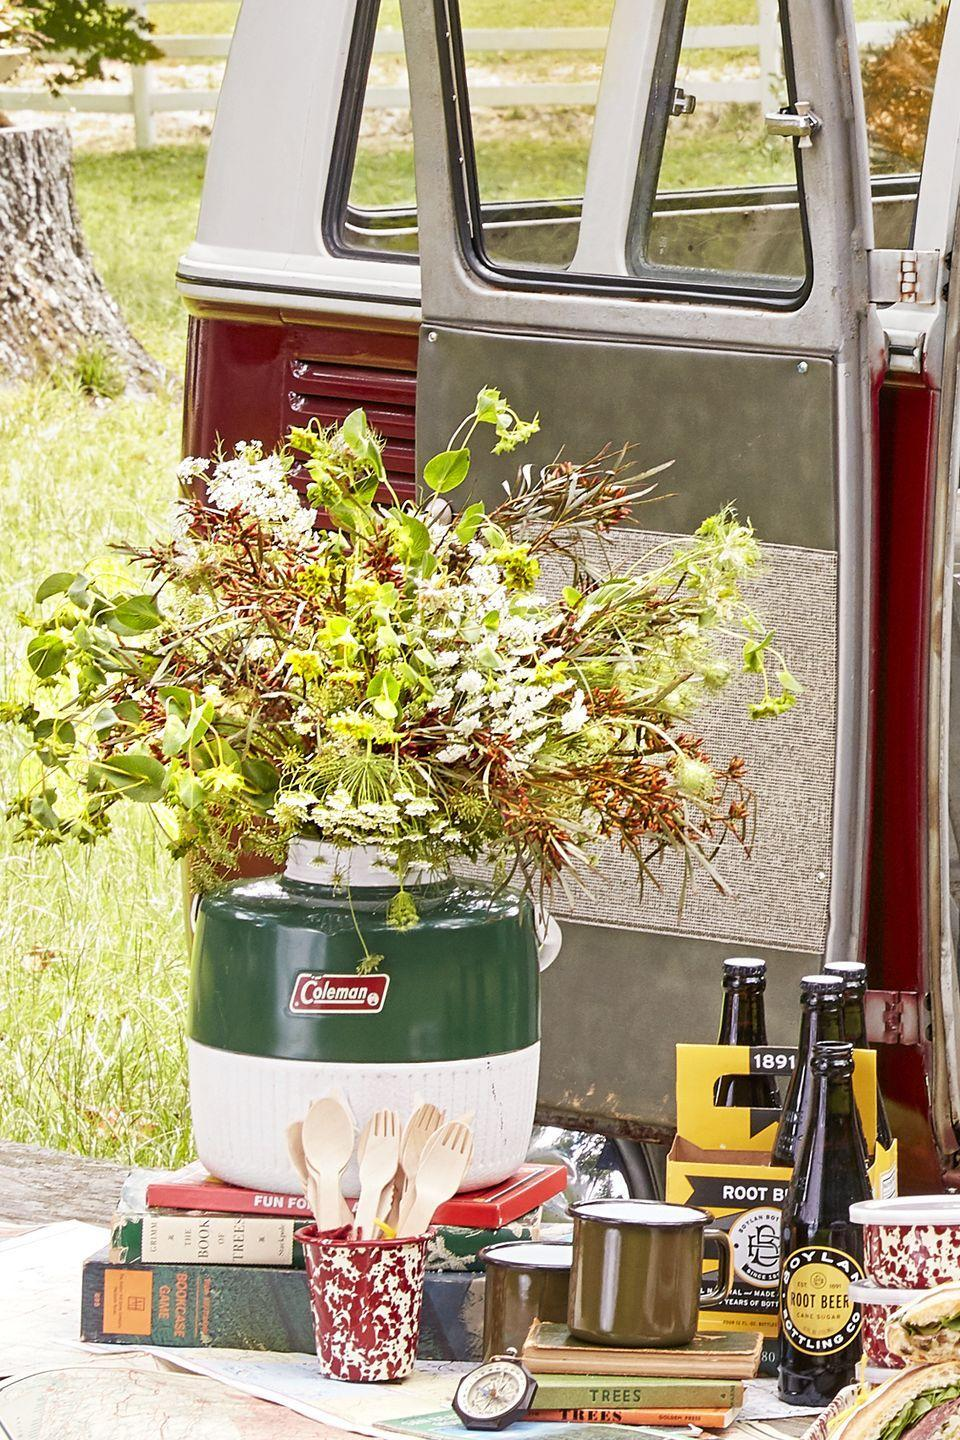 """<p>If Thanksgiving tends to be a casual shindig in your home, use a vintage jug cooler and foraged branches, leaves, and flowers from your backyard.</p><p><a class=""""link rapid-noclick-resp"""" href=""""https://go.redirectingat.com?id=74968X1596630&url=https%3A%2F%2Fwww.ebay.com%2Fsch%2Fi.html%3F_from%3DR40%26_trksid%3Dm570.l1313%26_nkw%3Dvintage%2Bjug%2Bcoolers%26_sacat%3D0%26LH_TitleDesc%3D0%26_osacat%3D0%26_odkw%3Dvintage%2Bcoolers&sref=https%3A%2F%2Fwww.countryliving.com%2Fentertaining%2Fg2130%2Fthanksgiving-centerpieces%2F"""" rel=""""nofollow noopener"""" target=""""_blank"""" data-ylk=""""slk:SHOP VINTAGE COOLERS"""">SHOP VINTAGE COOLERS</a></p>"""